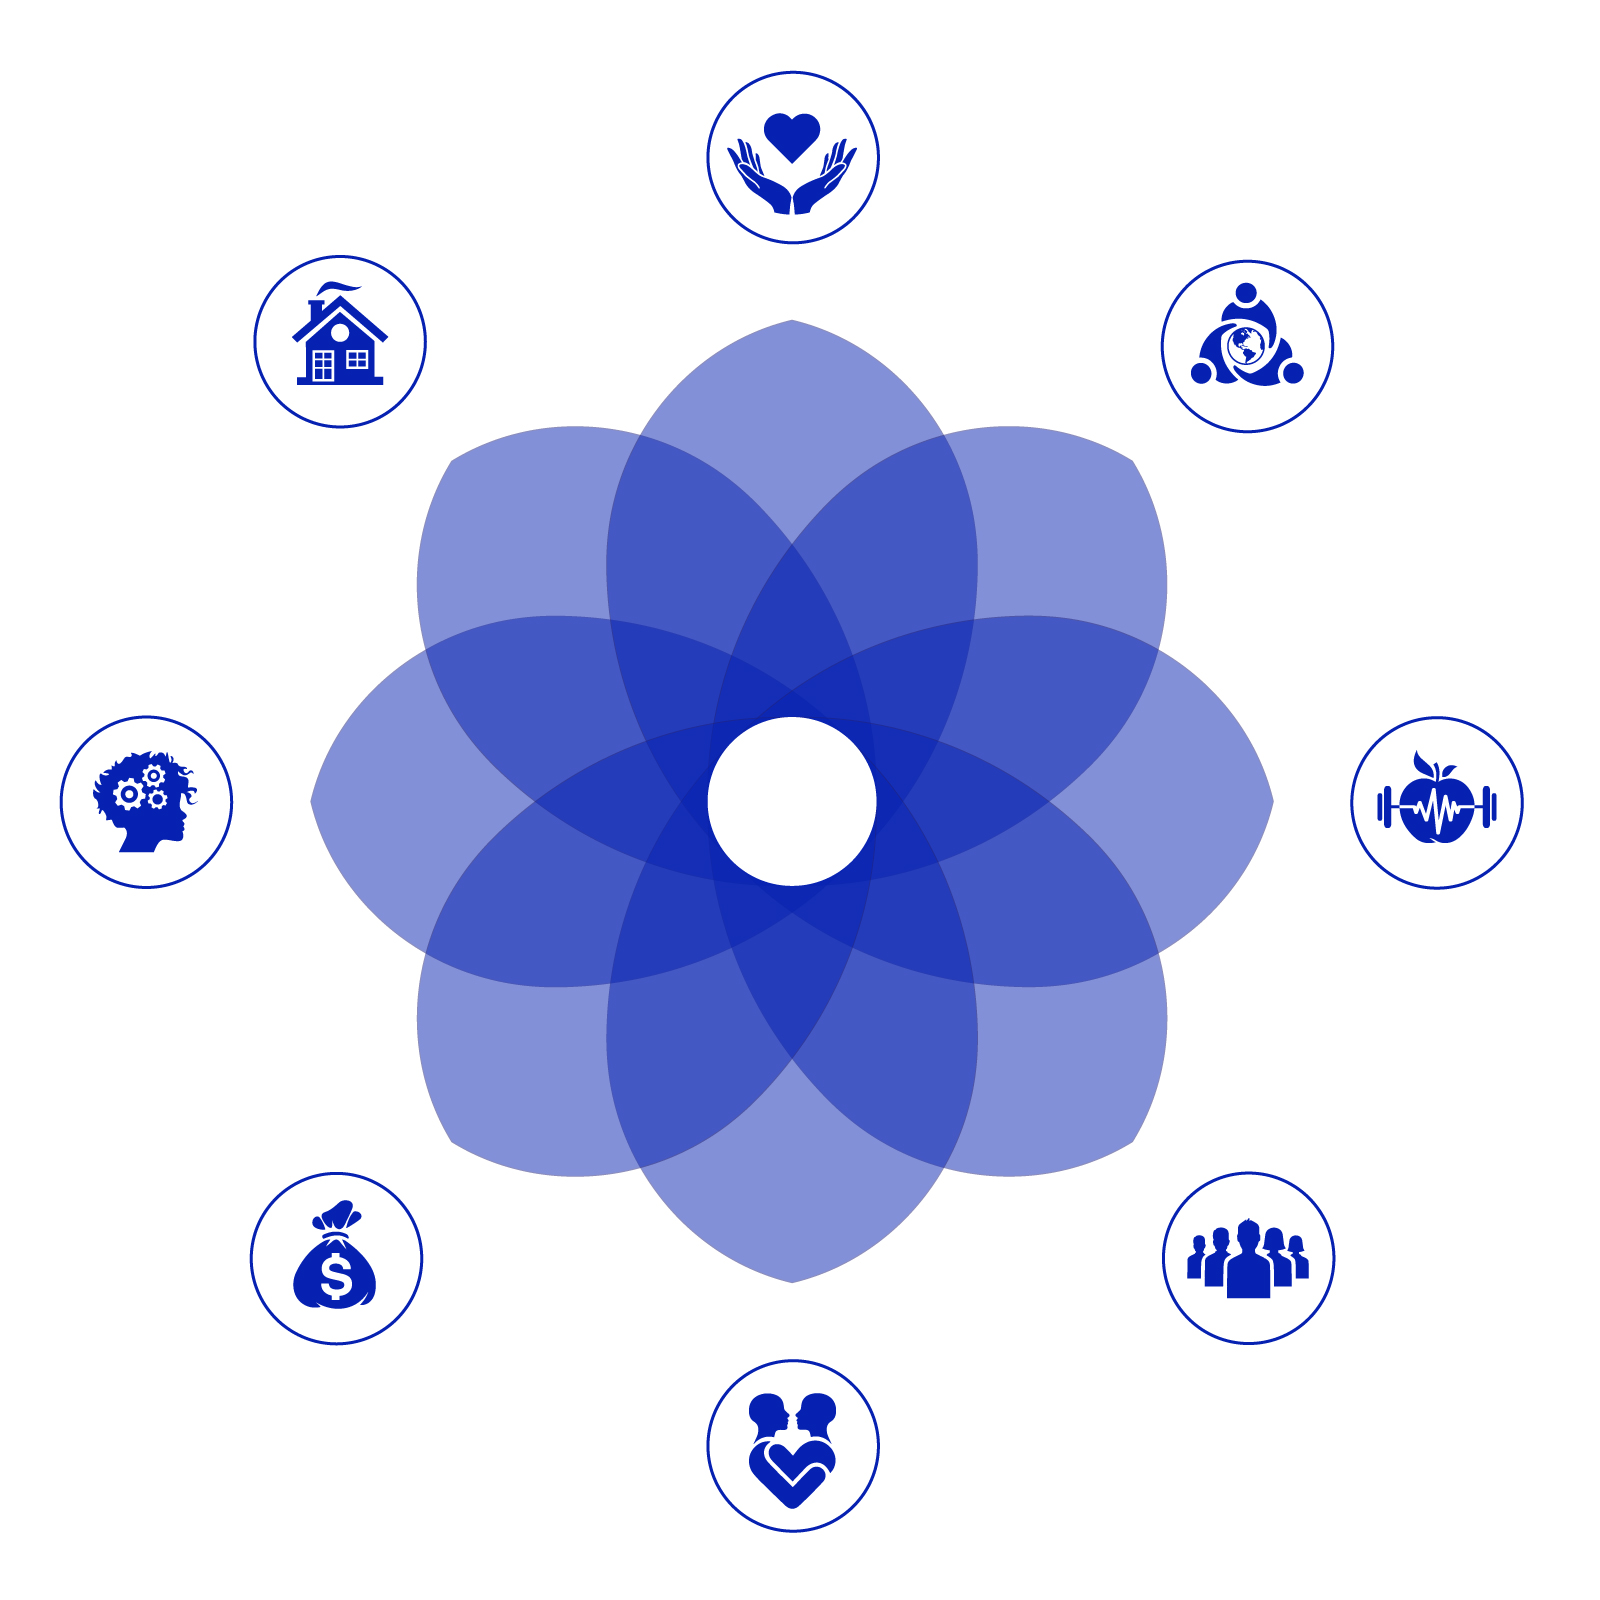 The-Nine-Spheres-of-Life_Blue-Version_with-larger-circles.jpg